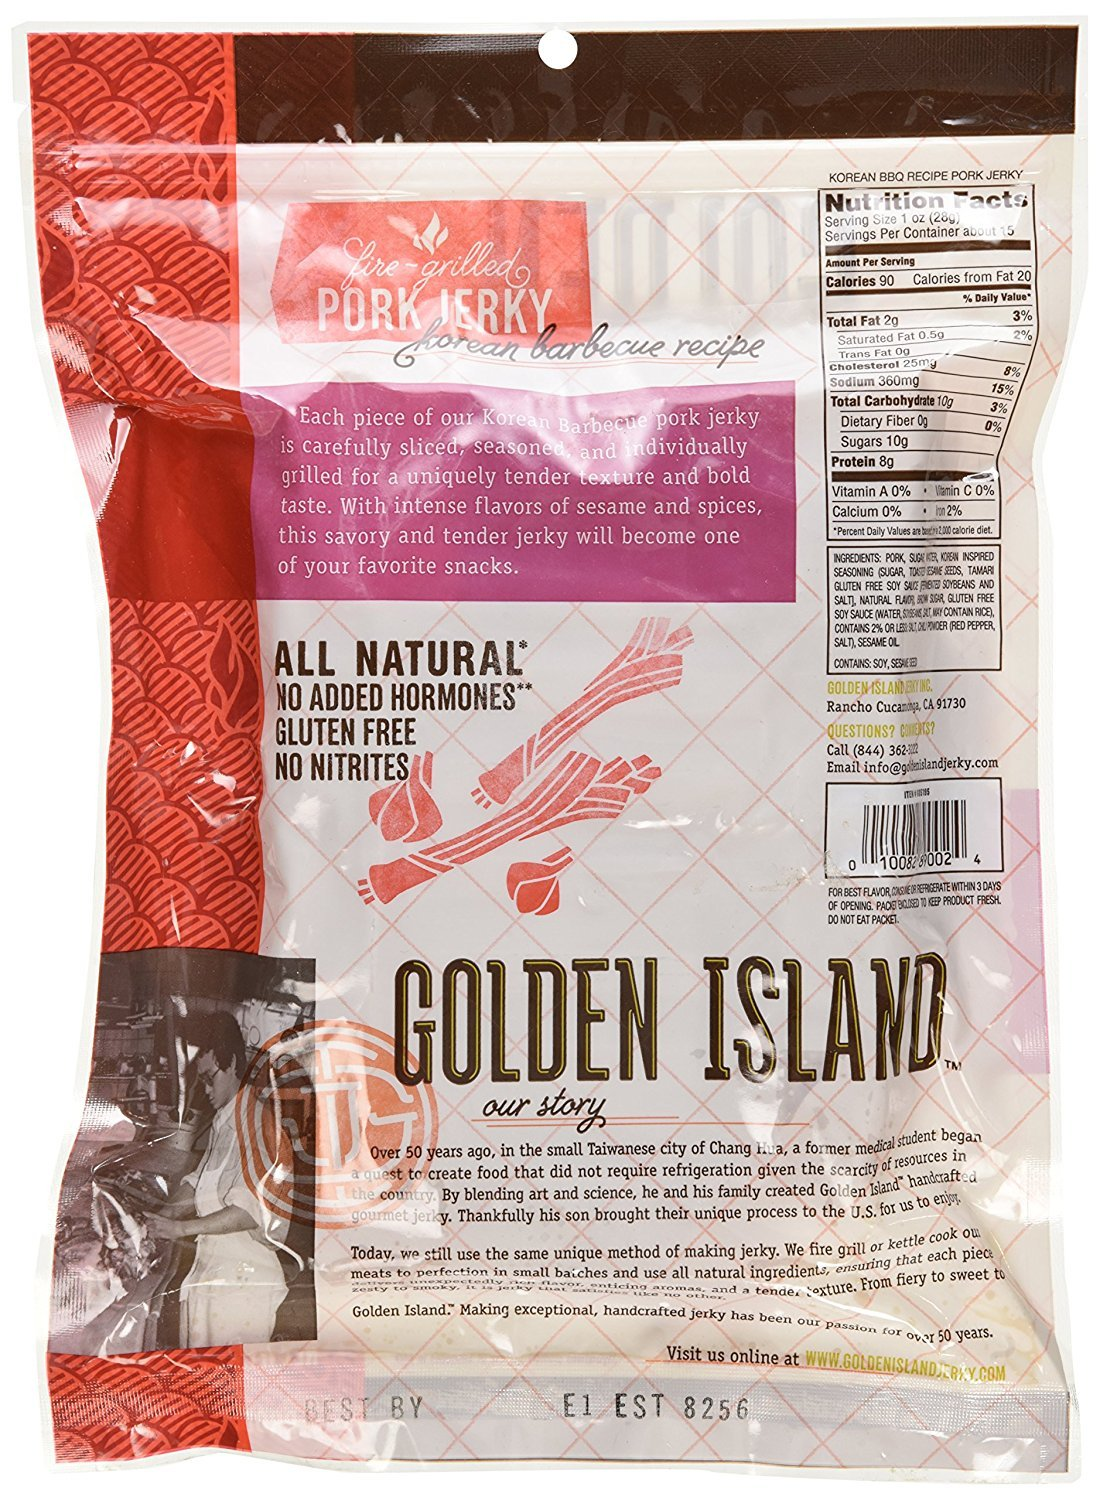 Golden Island Natural Style Pork Jerky, Korean Barbecue Recipe, 14.5oz (Pack of 3) by Golden Island (Image #3)